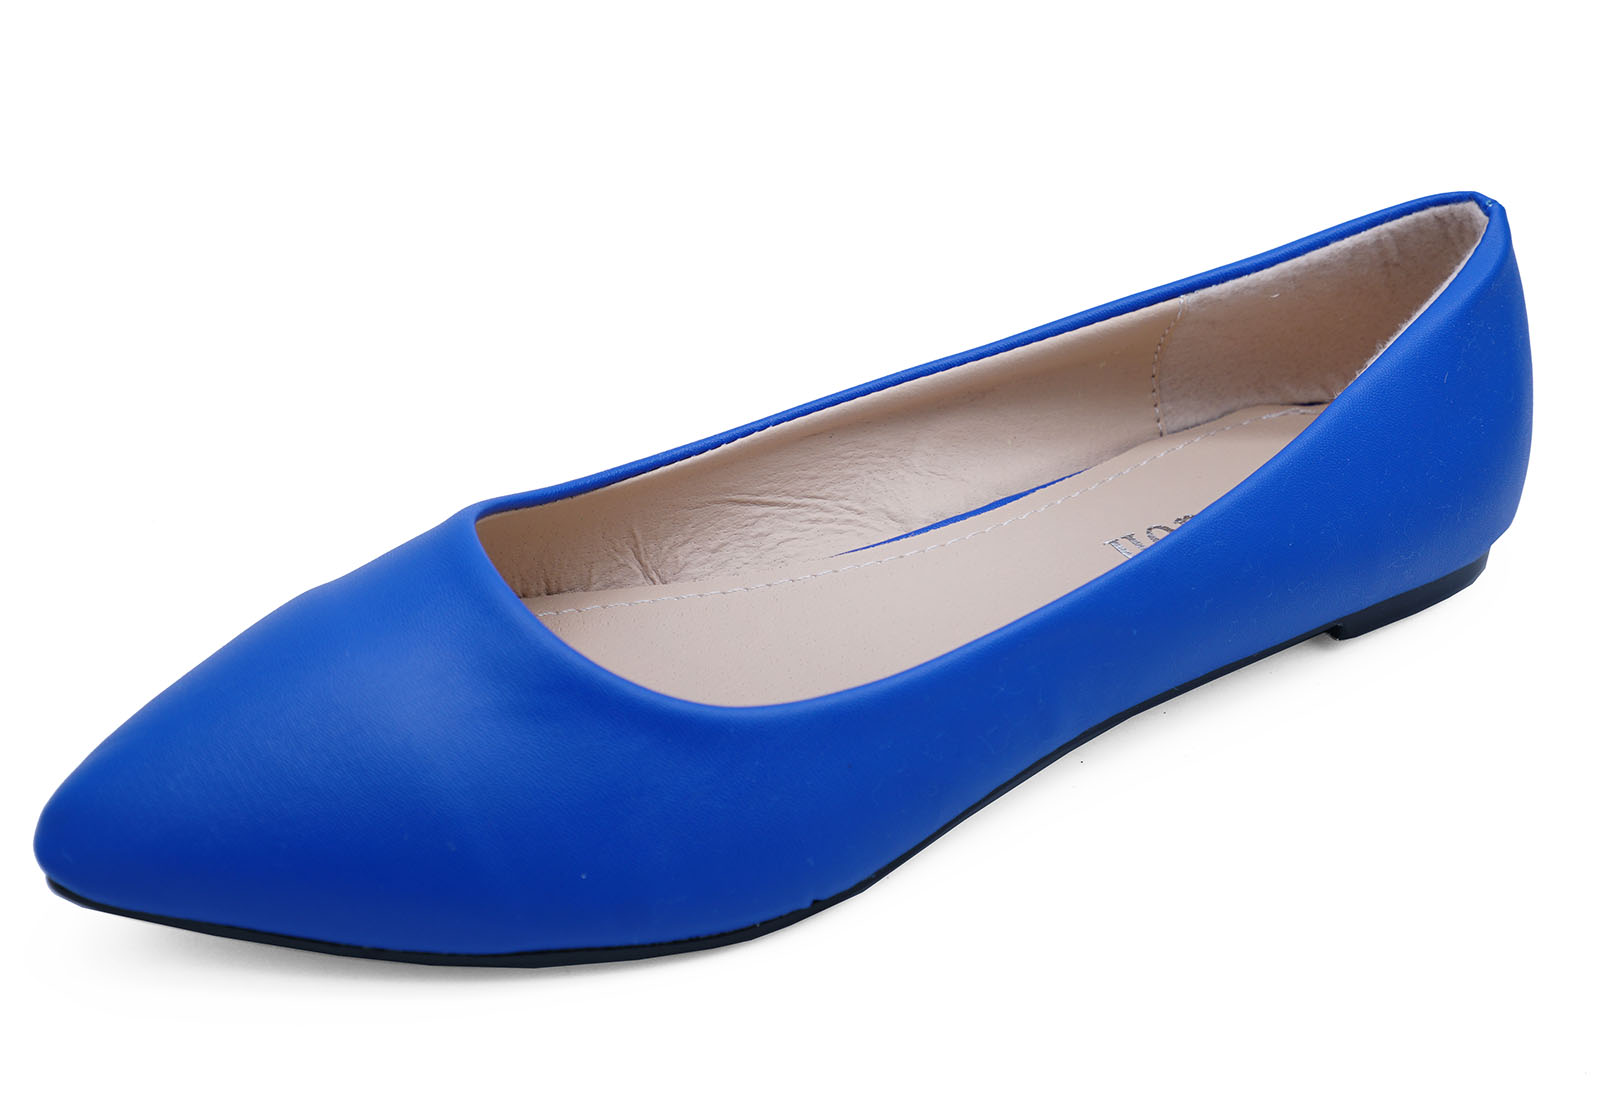 Ladies Blue Slip On Smart Flat Shoes Pointy Comfy Ballet Ballerina Flatshoes Sentinel Pumps Uk 3